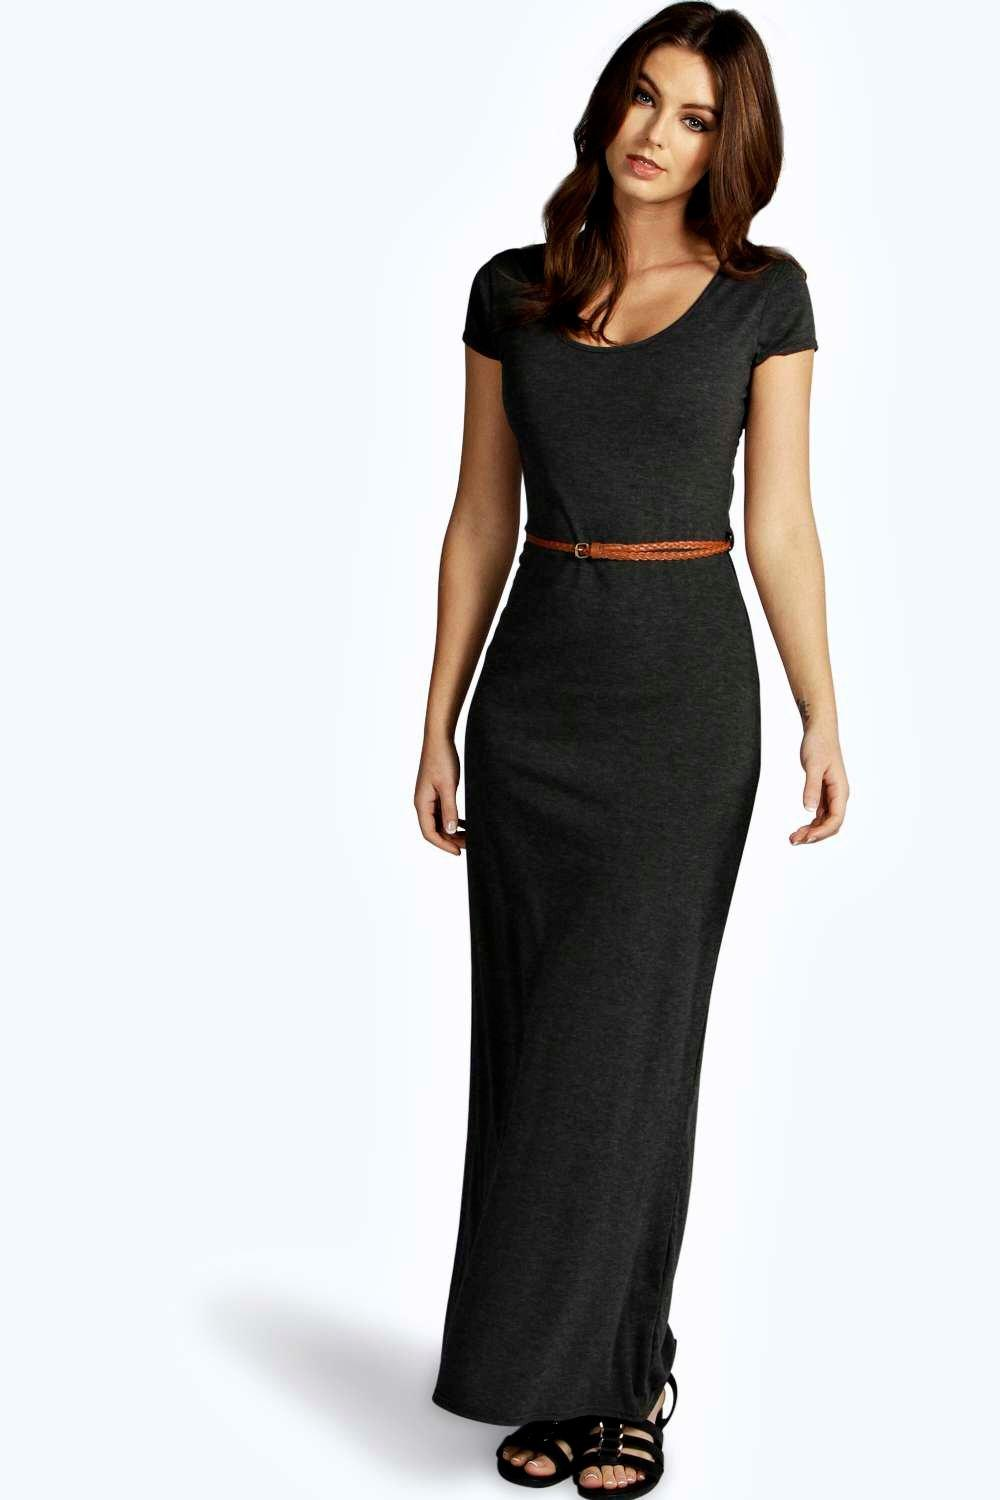 Cap sleeve belted maxi dress